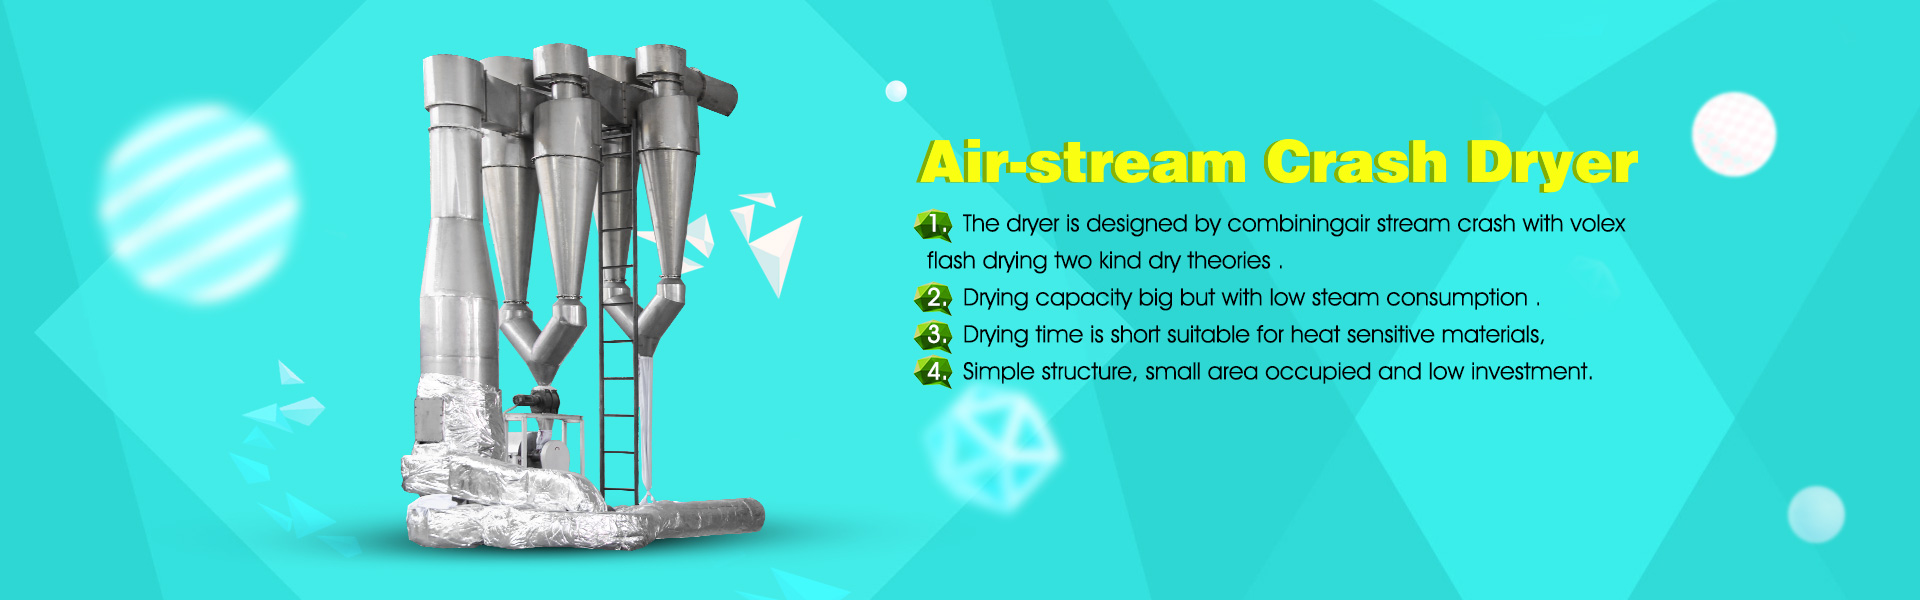 Air-stream crash dryer